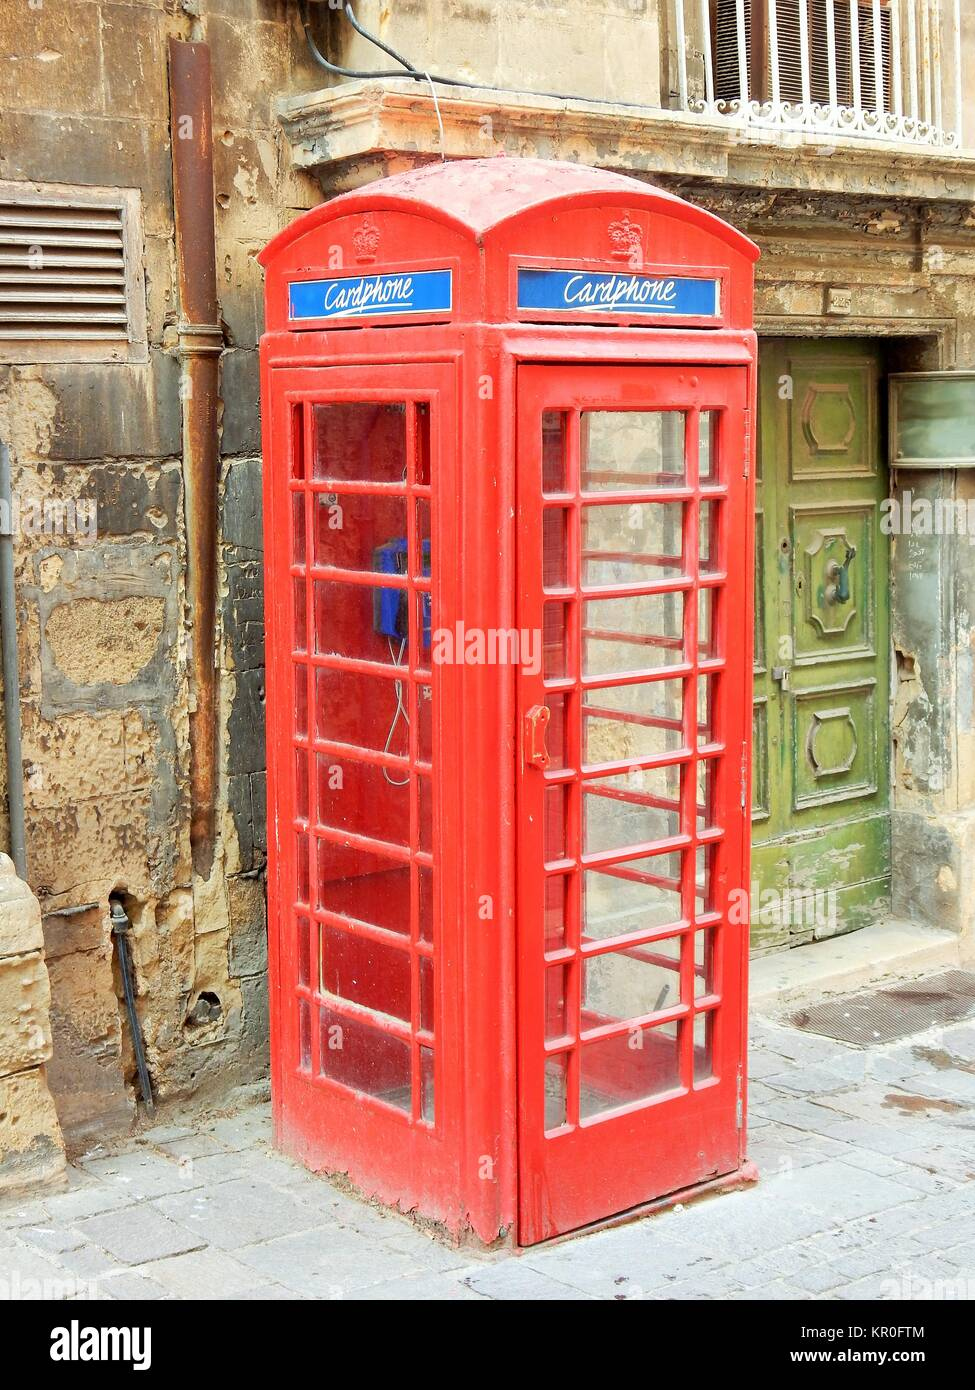 old english phone booth in valletta,malta - Stock Image